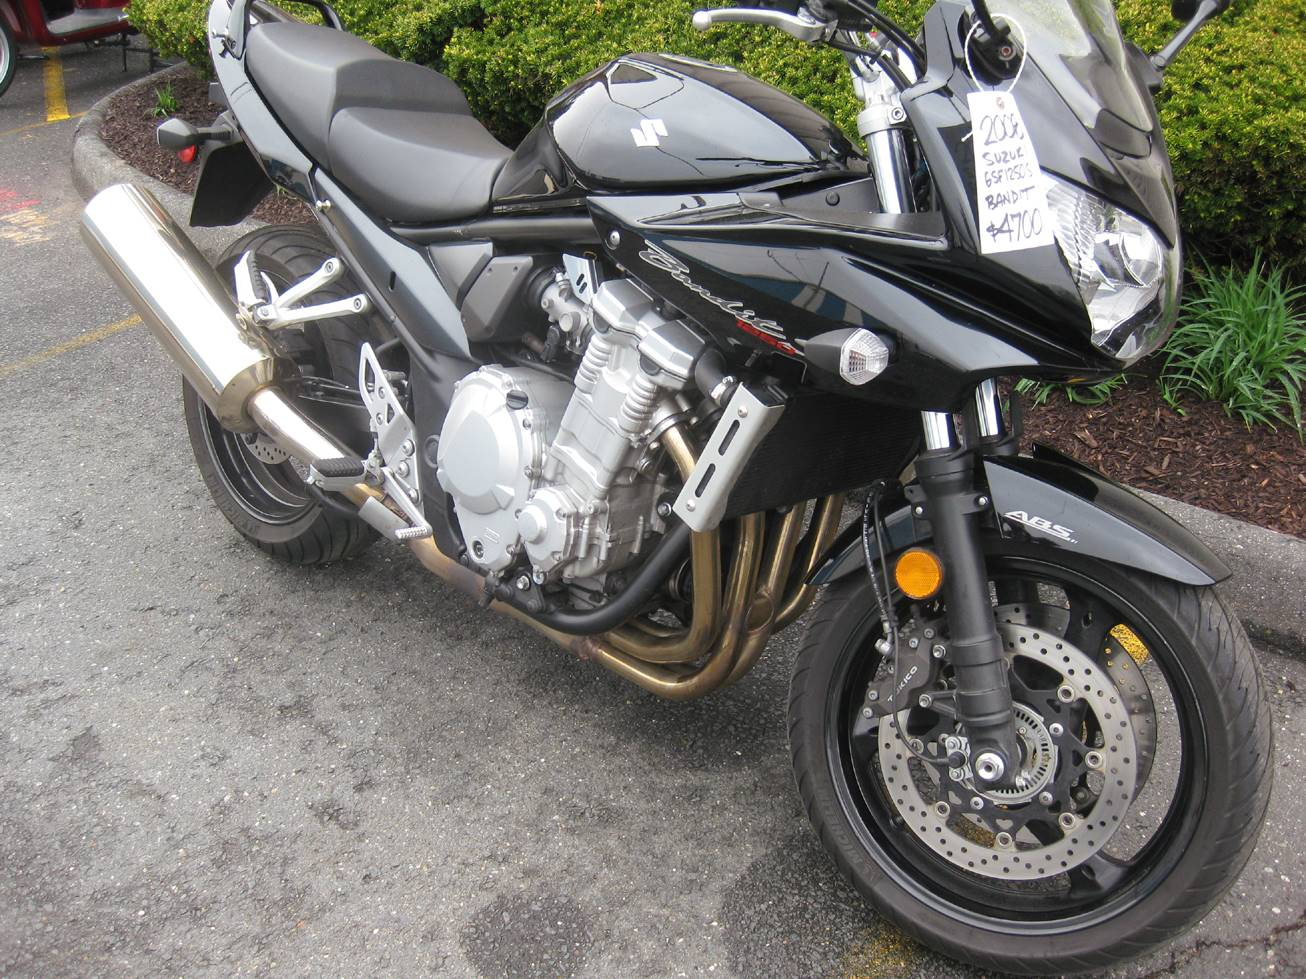 2008 Suzuki Bandit 1250S in Northampton, Massachusetts